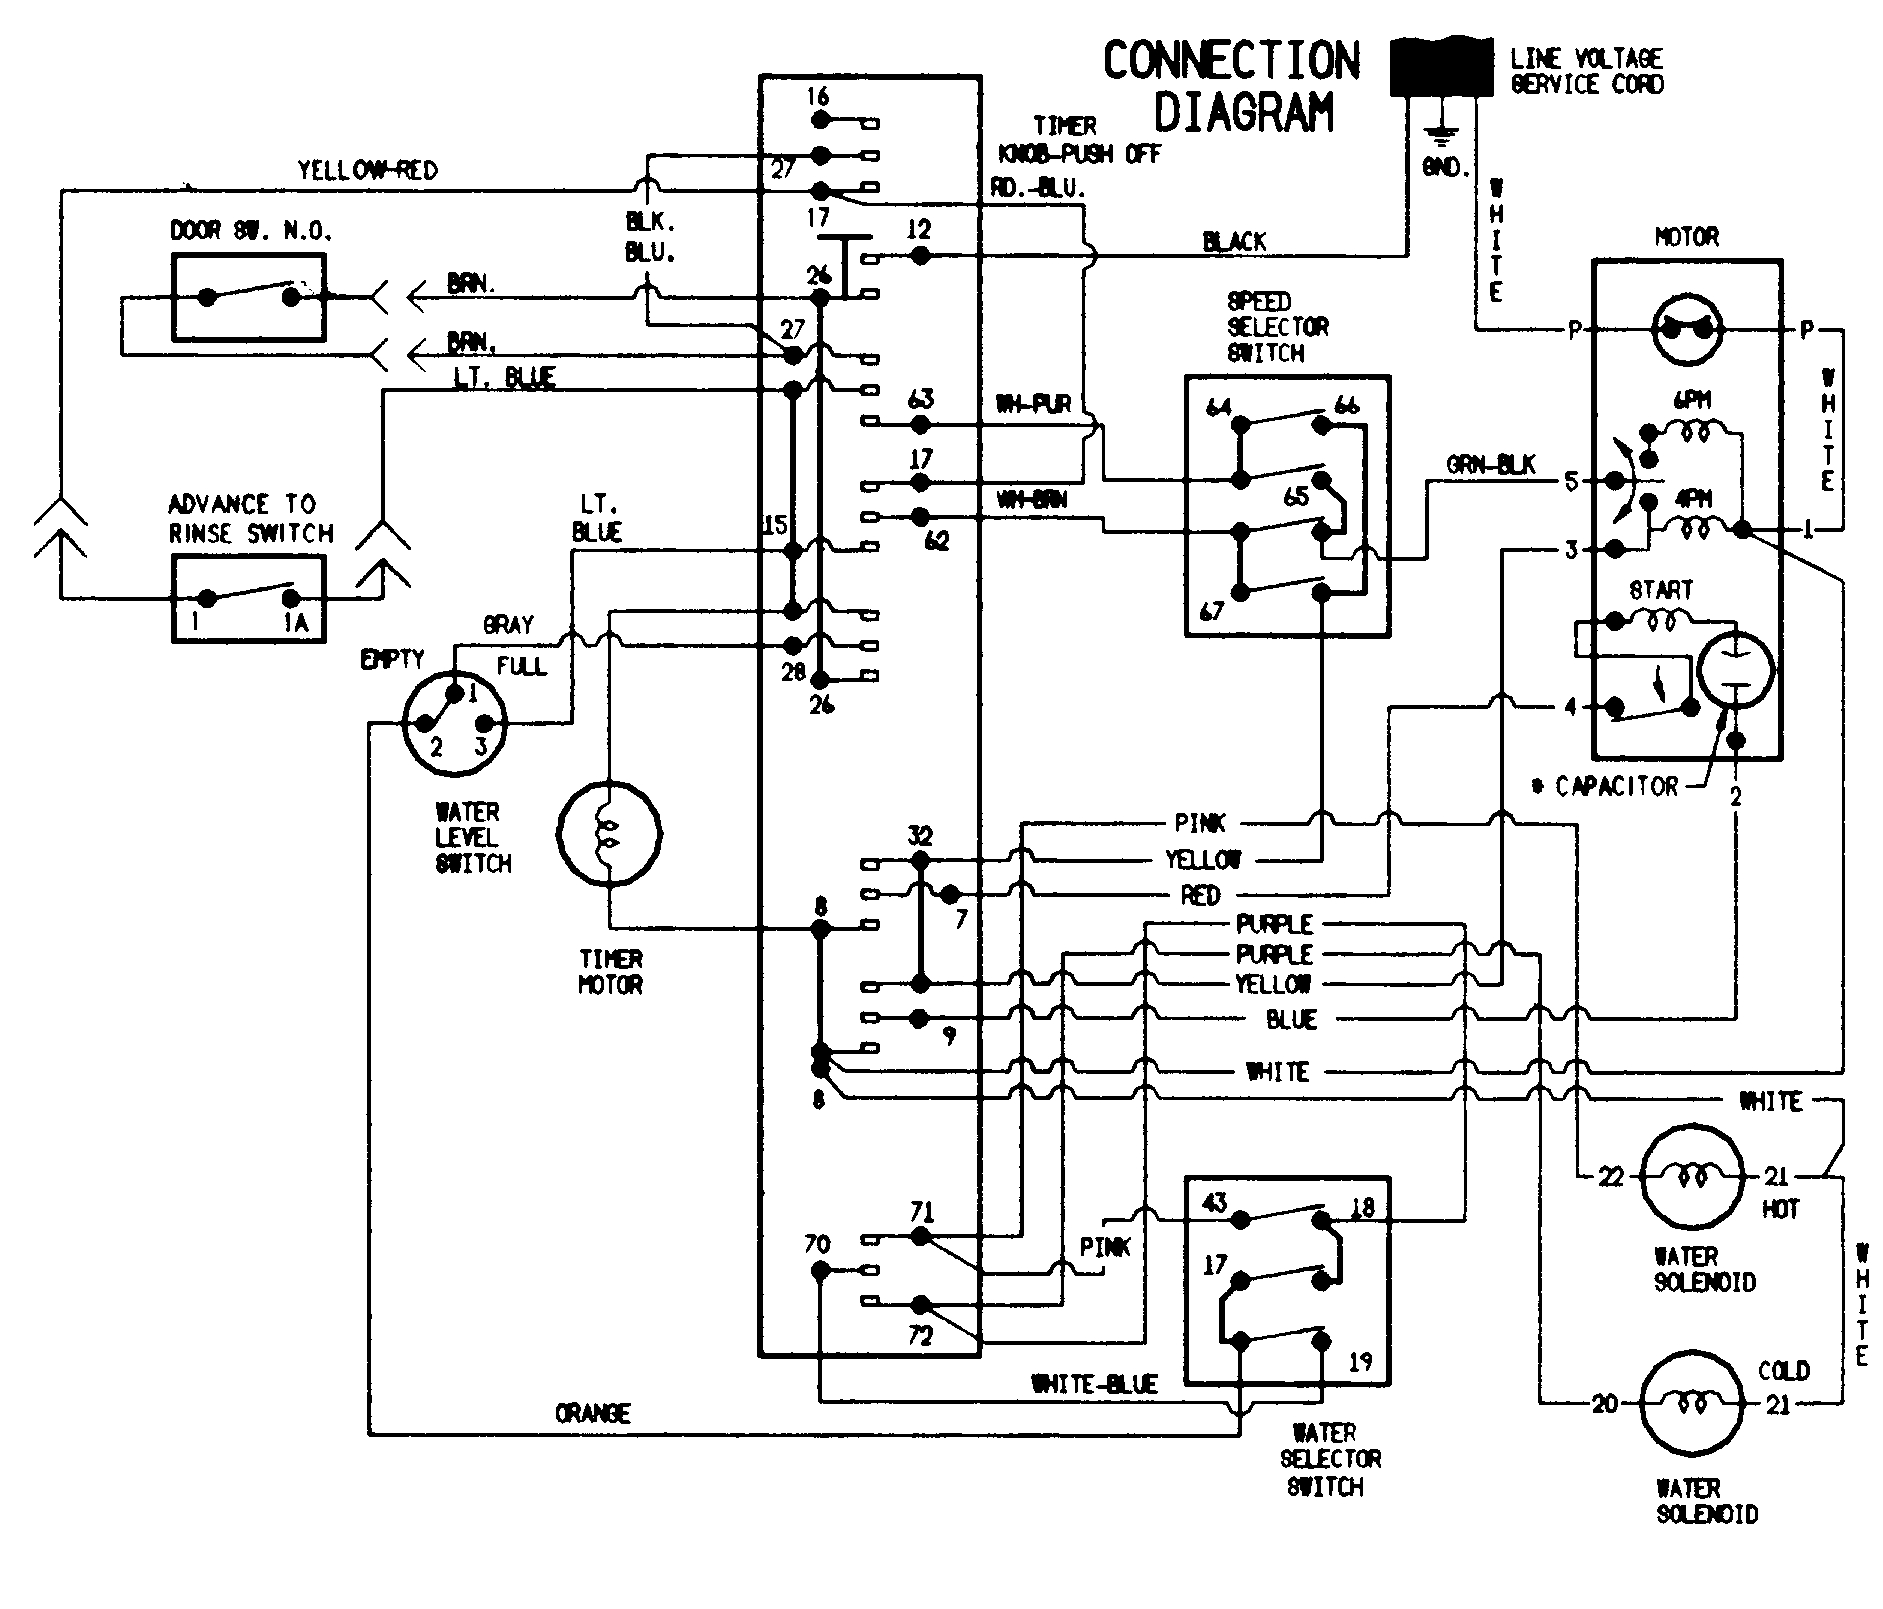 dryer wiring diagram how to wire a dryer outlet 3 prong e280a2 sharedw regarding kenmore 80 series dryer parts diagram?resize=665%2C568&ssl=1 white knight tumble dryer wiring diagram the best wiring diagram white knight tumble dryer wiring diagram at bayanpartner.co